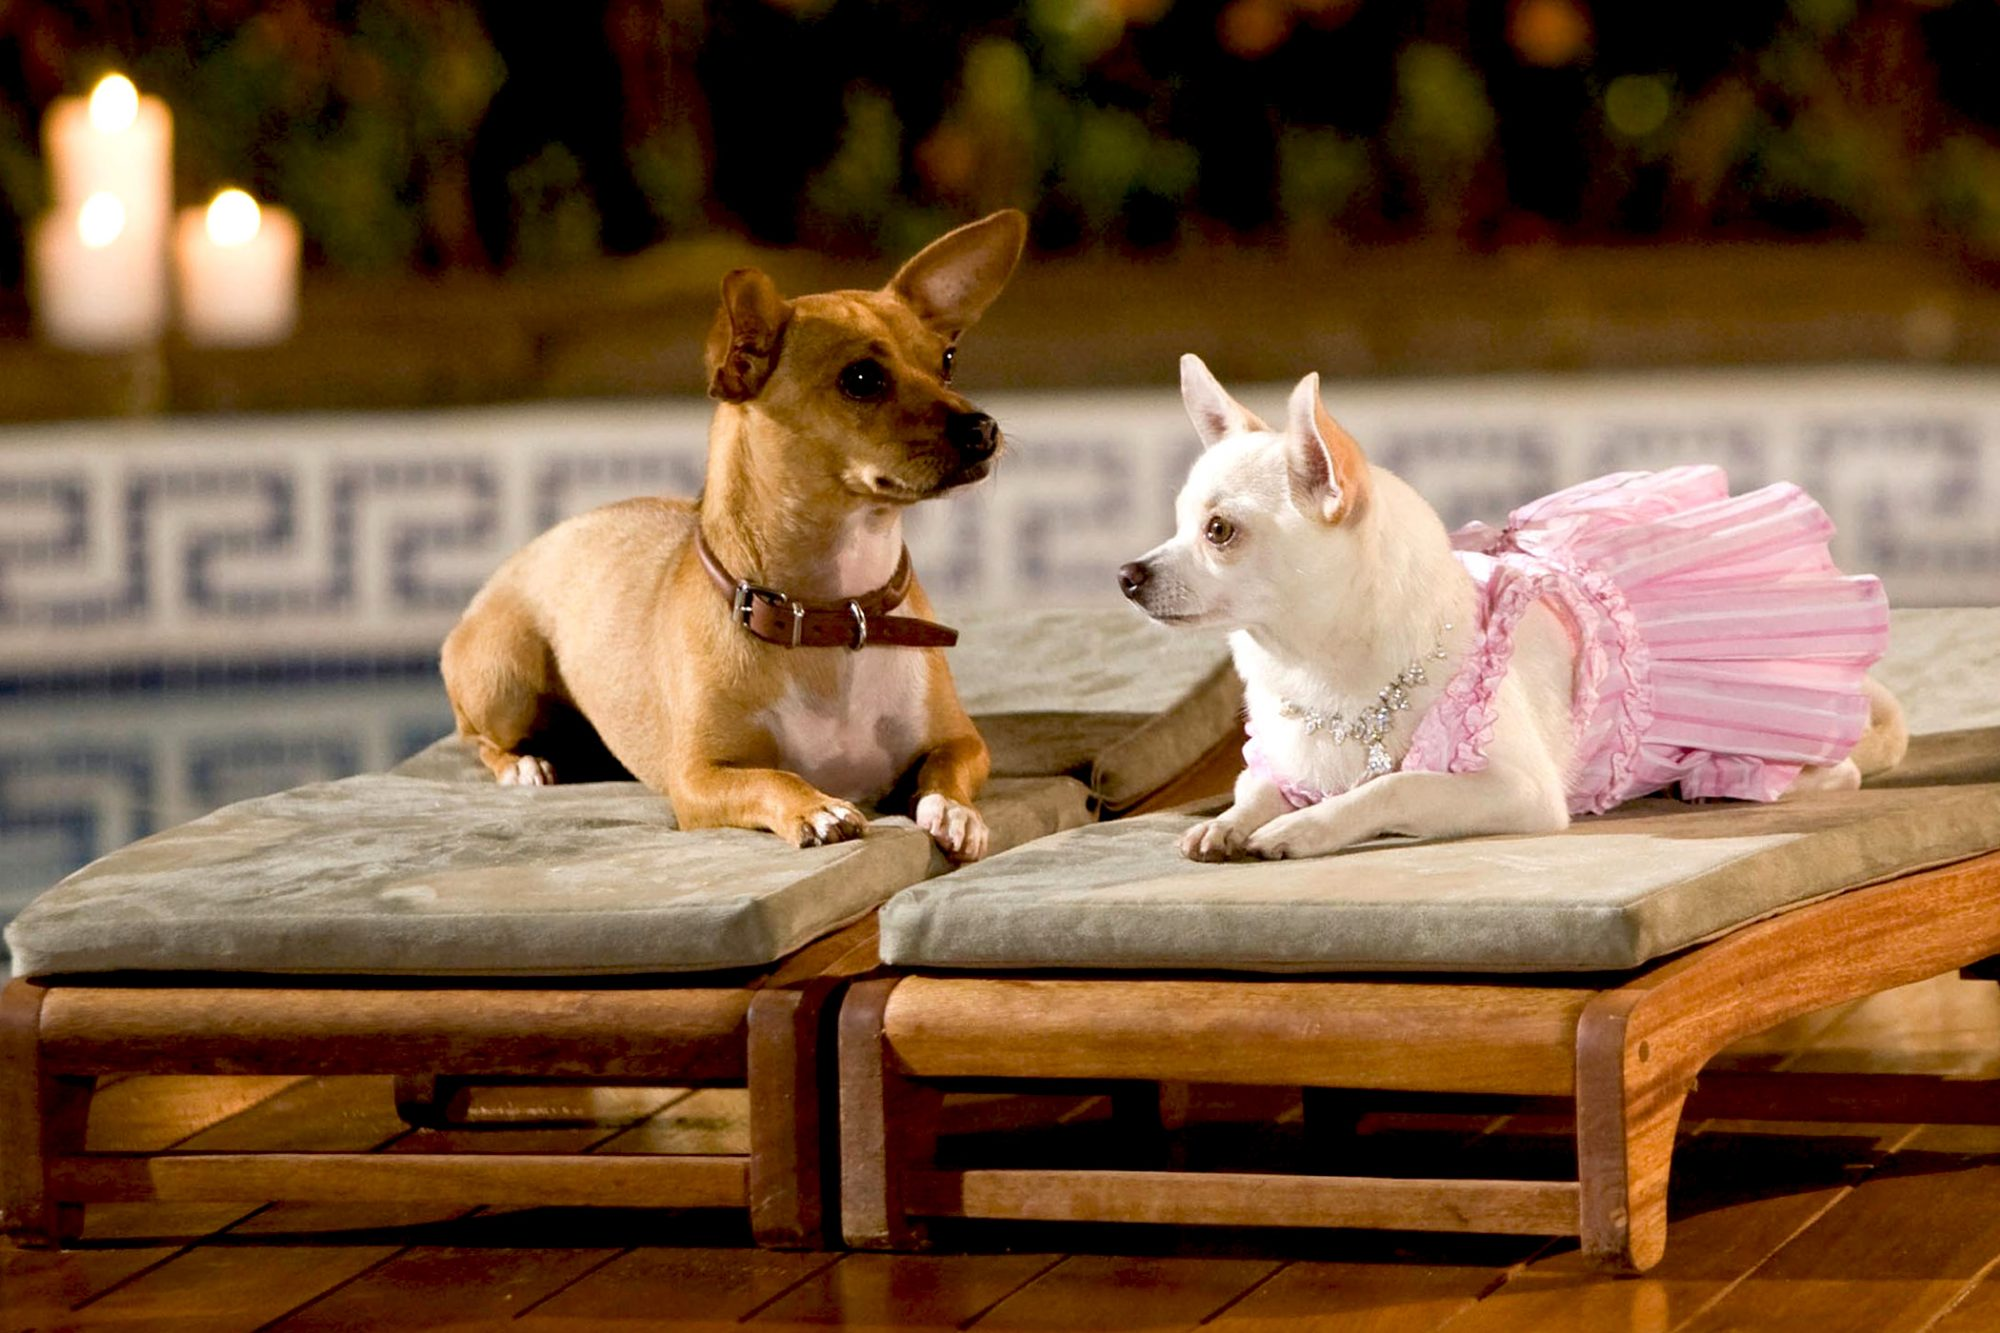 Brown chihuahua with brown leather collar lays next to white chihuahua who is wearing a pink dress